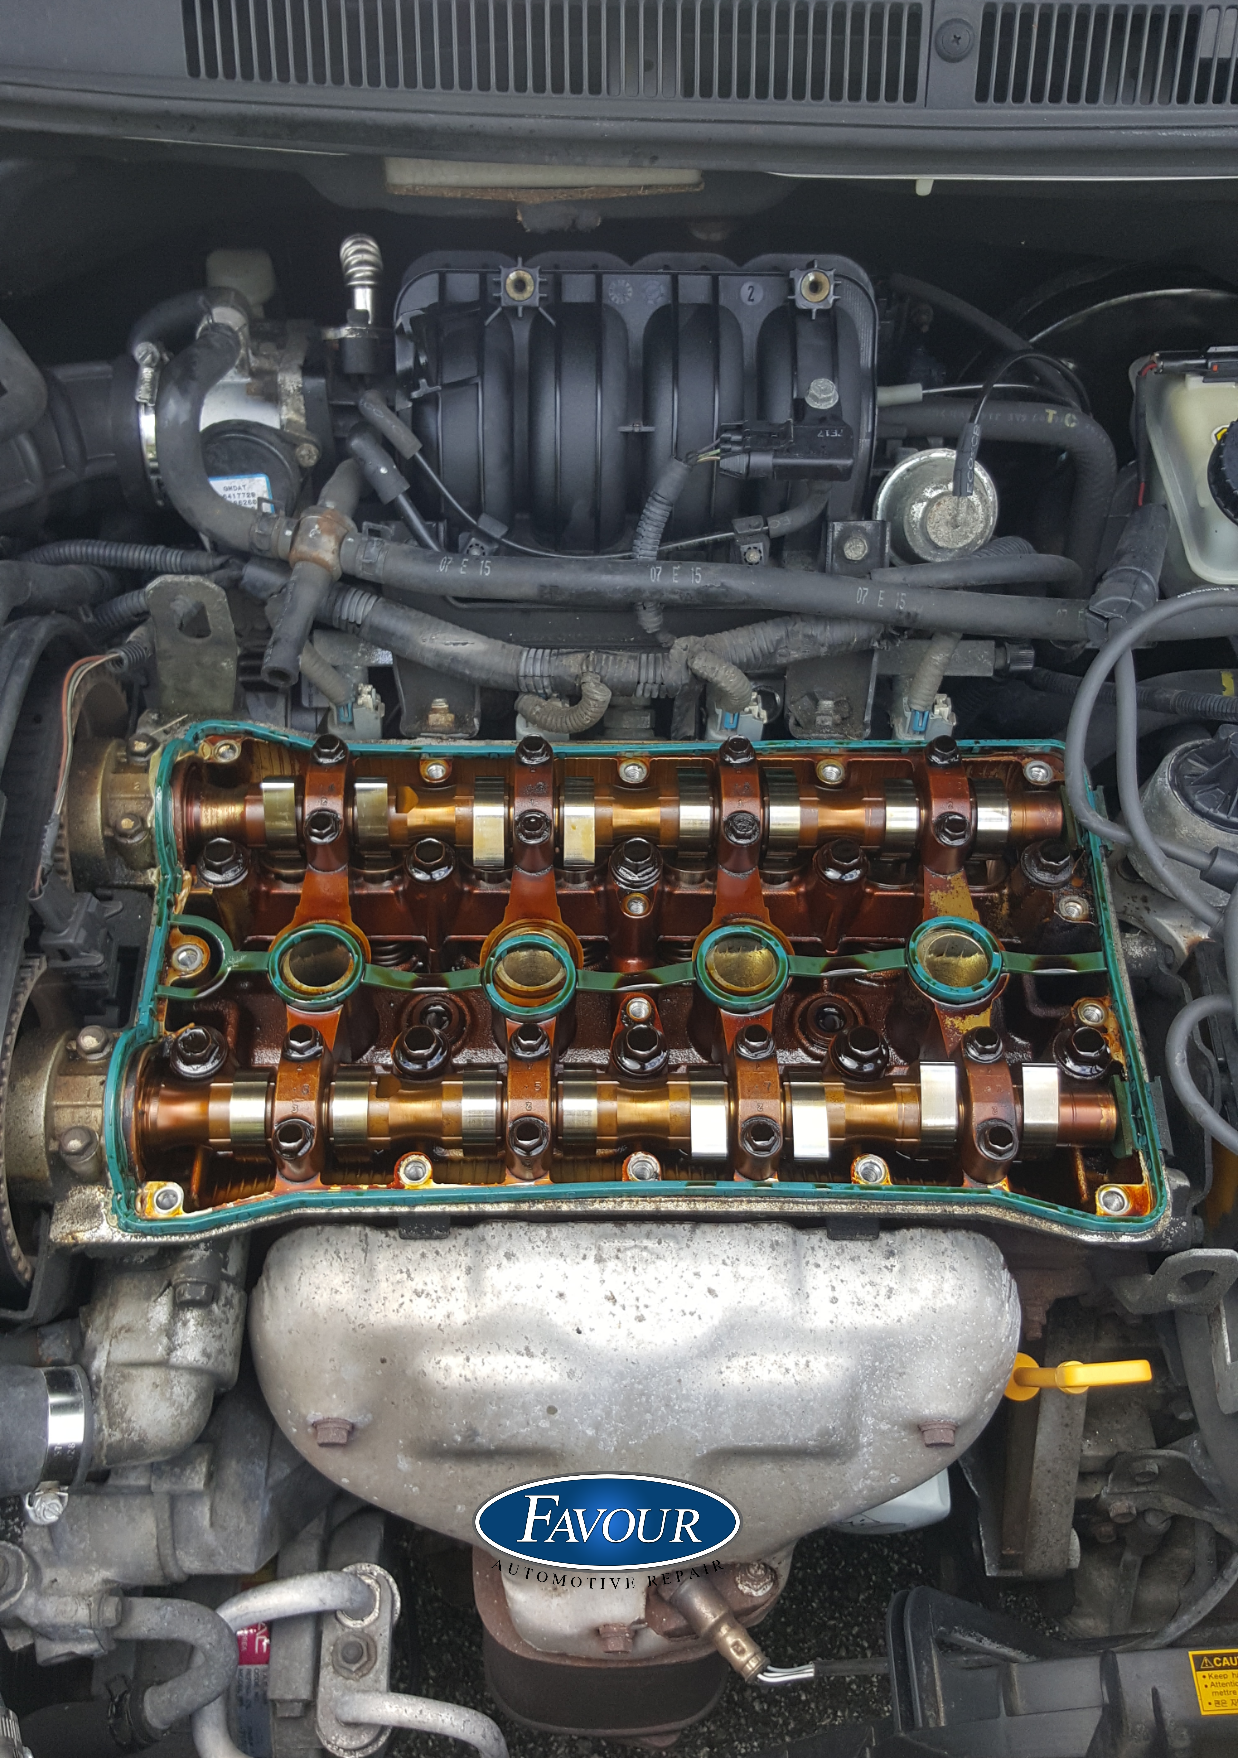 Replaced A Worn Valve Cover Gasket On A 2007 Chevy Aveo Diy